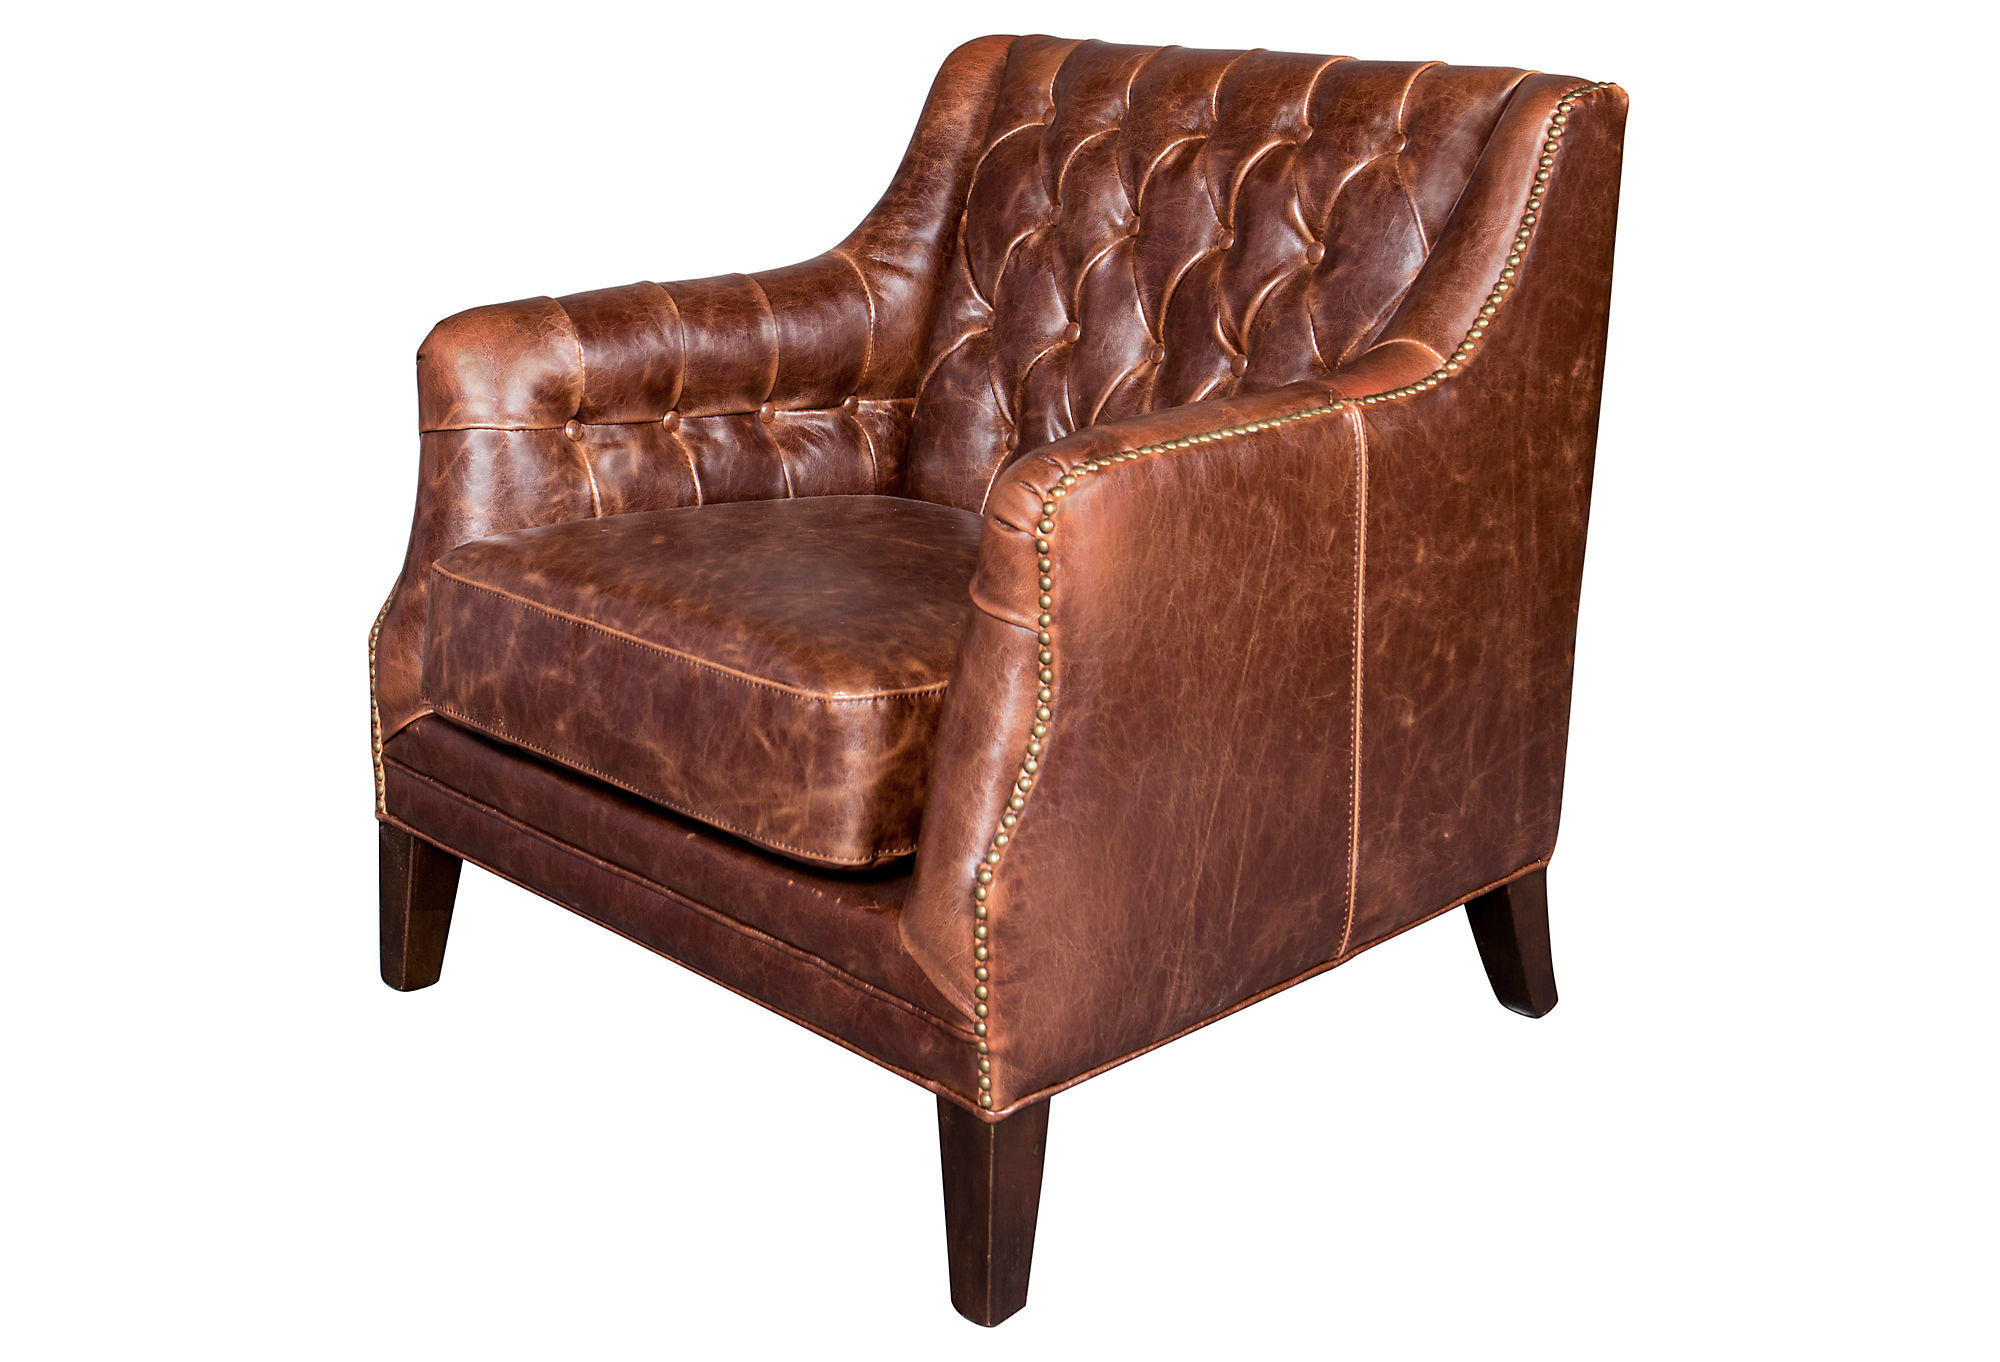 leather chairs of bath london swing chair wooden tufted club brown from one kings lane